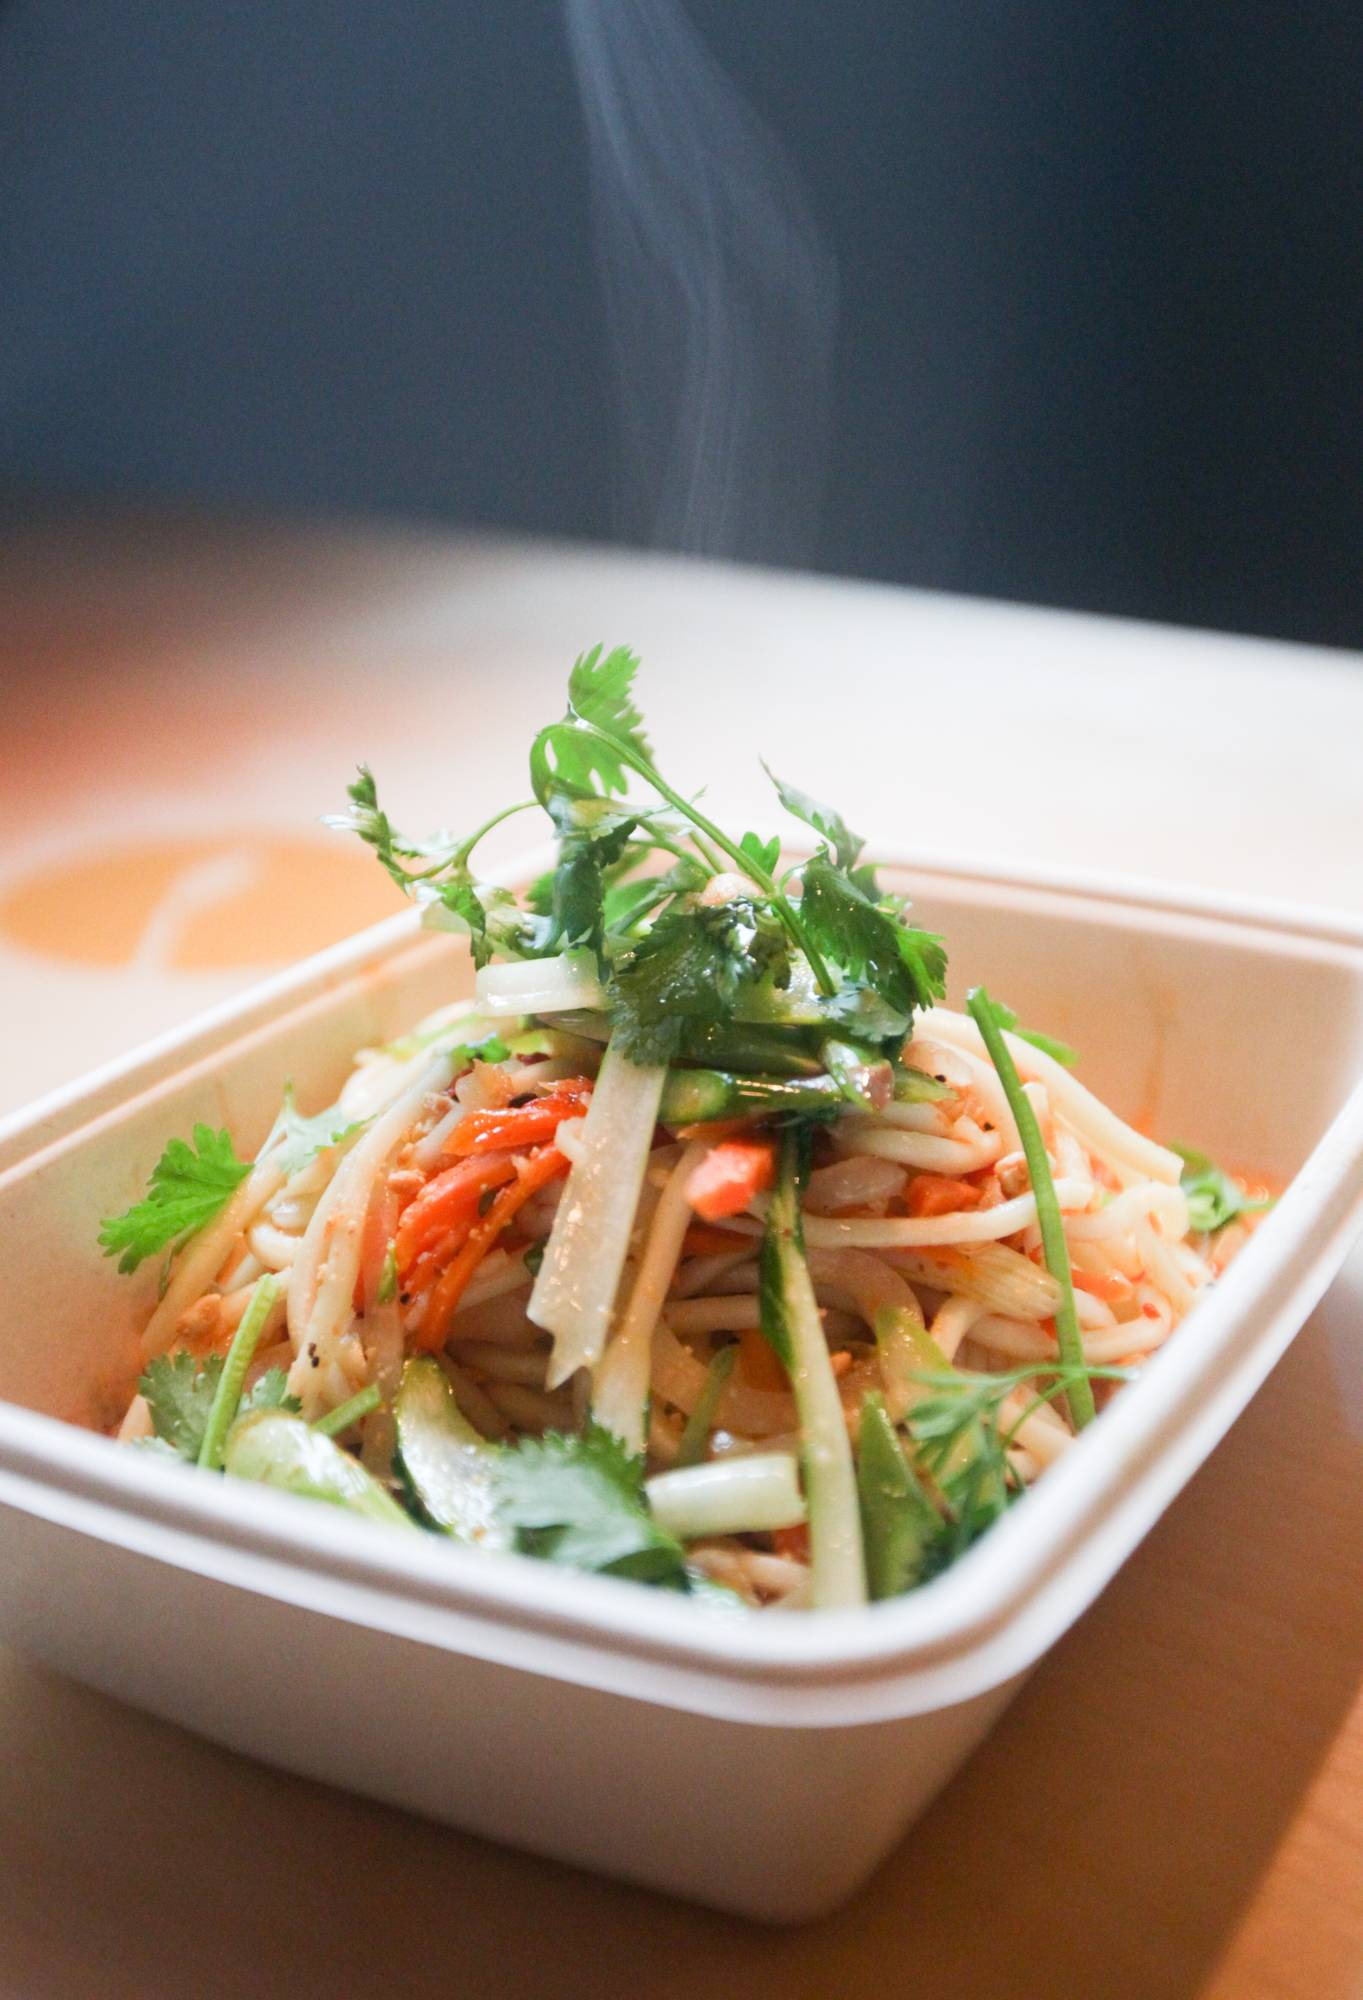 Noodle-udon comes with bok choy, carrots, crushed peanuts, ginger and fresh herb at Harvest in downtown Traverse City. It's the brainchild of Simon Joseph, an entrepreneurial chef who cruised into town three years ago aboard Roaming Harvest, the city's first food truck.